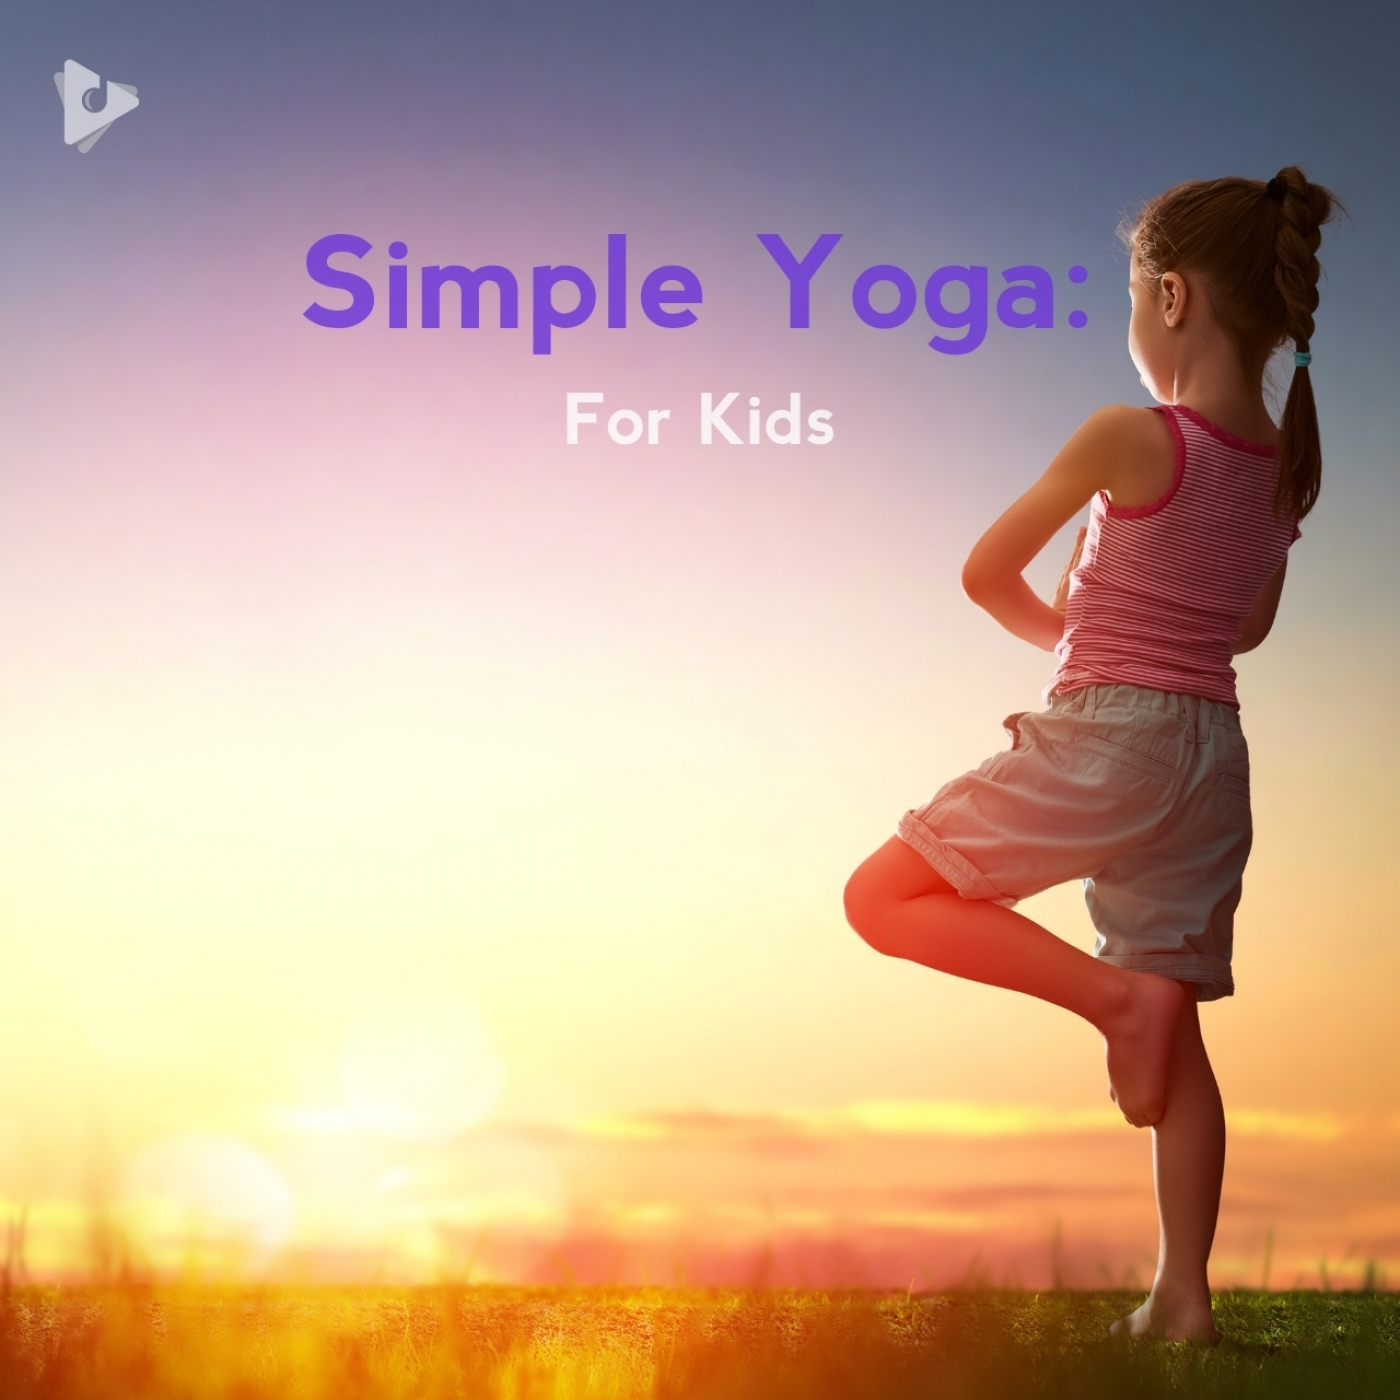 Simple Yoga: For Kids